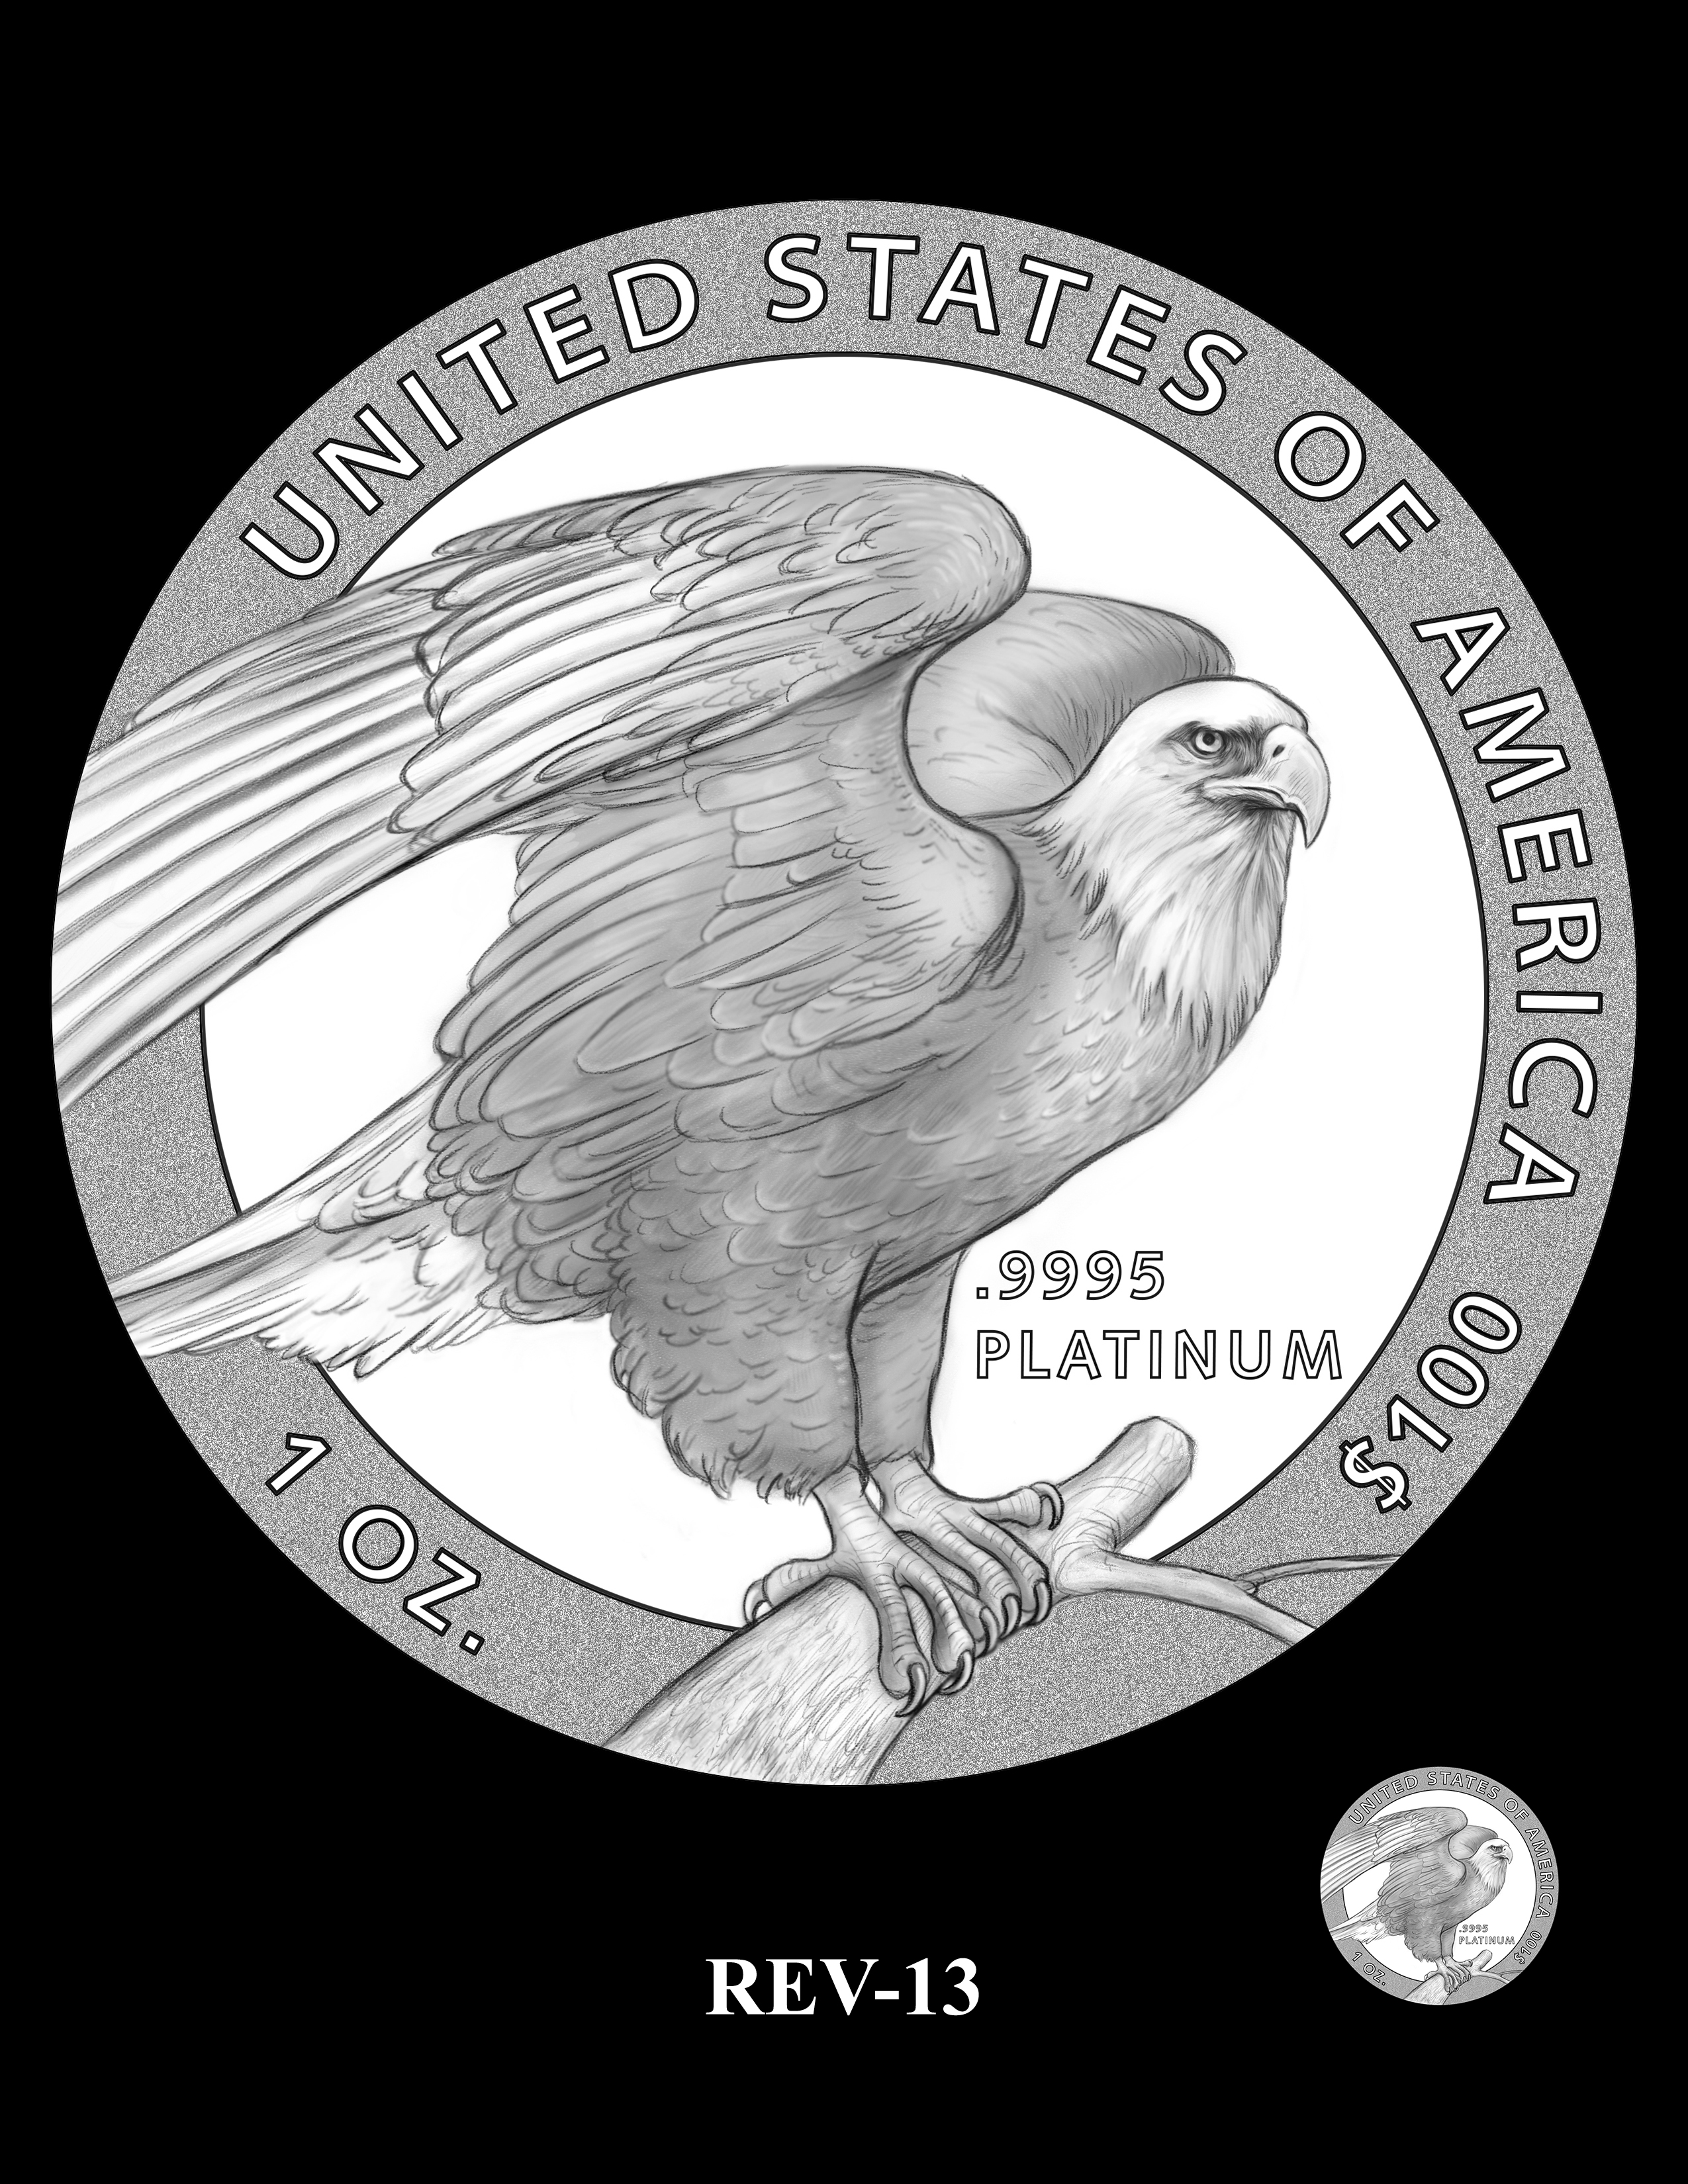 SETXX-REV-13 - 2018 2019 and 2020 American Eagle Platinum Proof Program